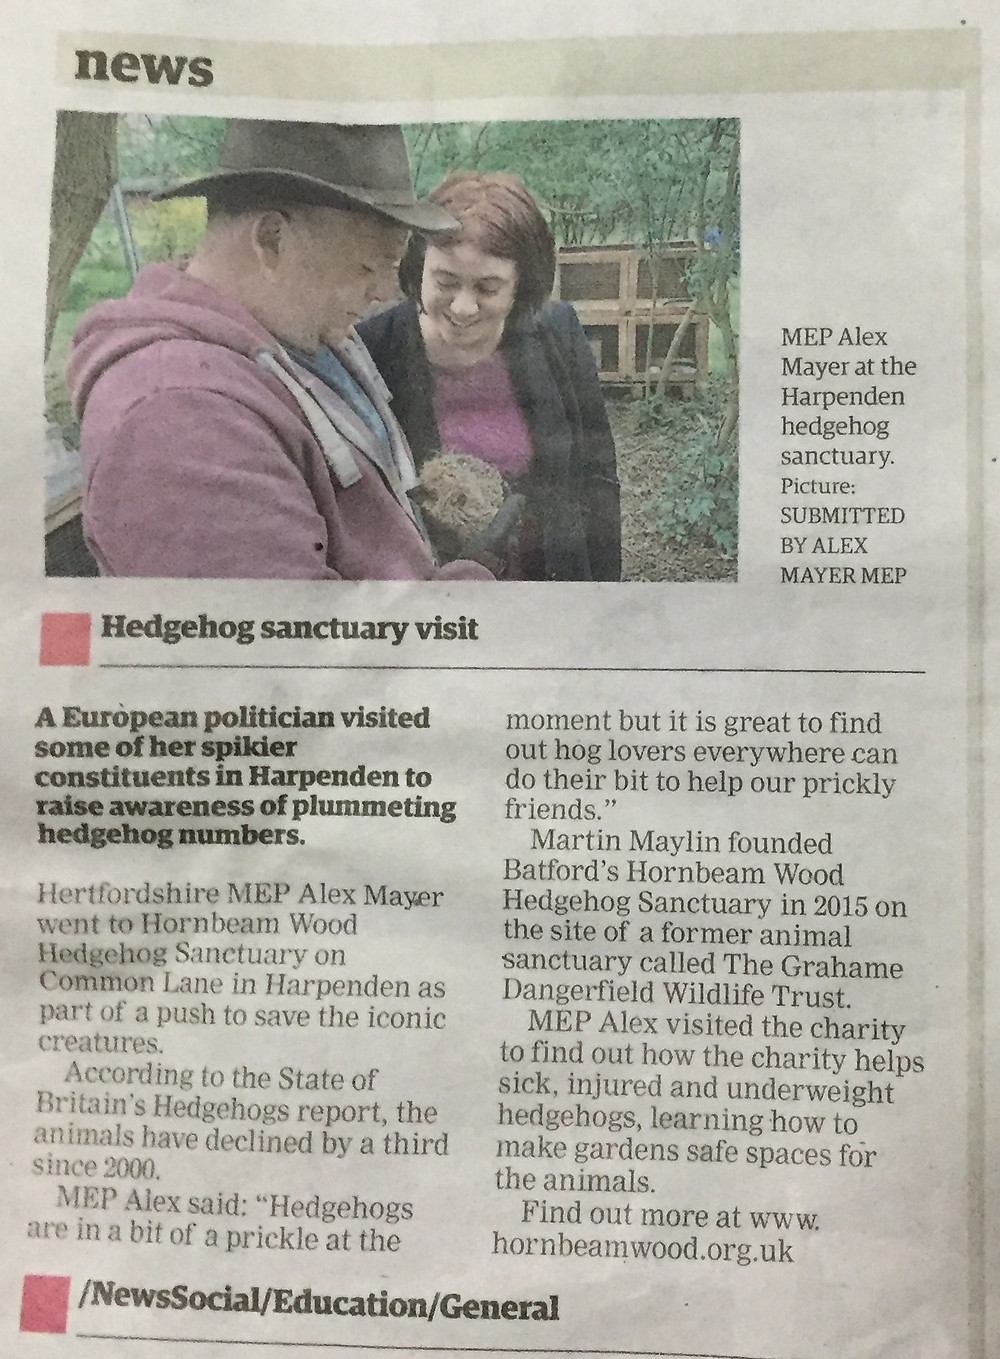 Herts Advertiser Article